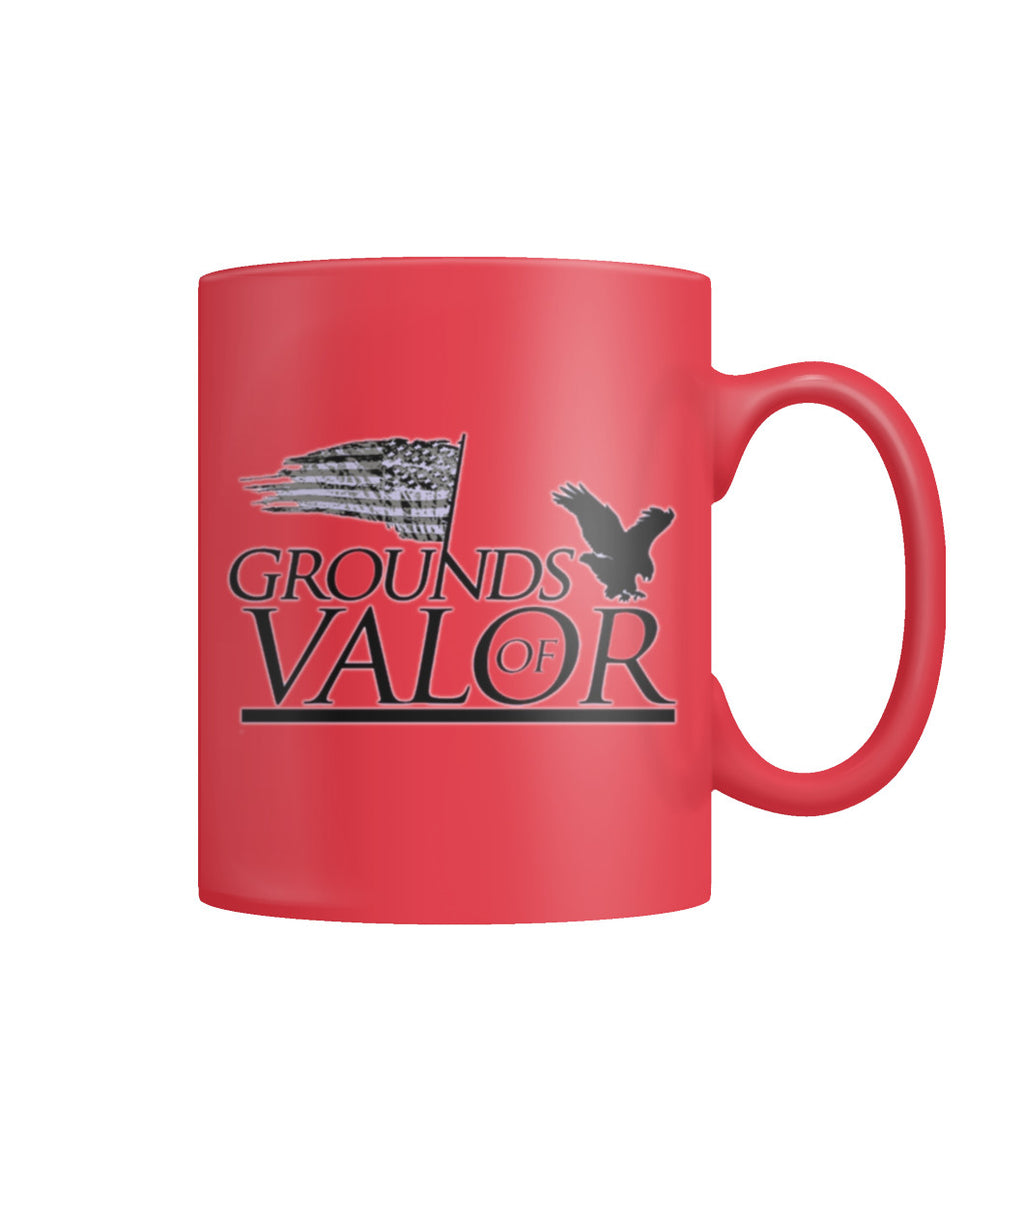 Grounds of Valor Coffee Mug